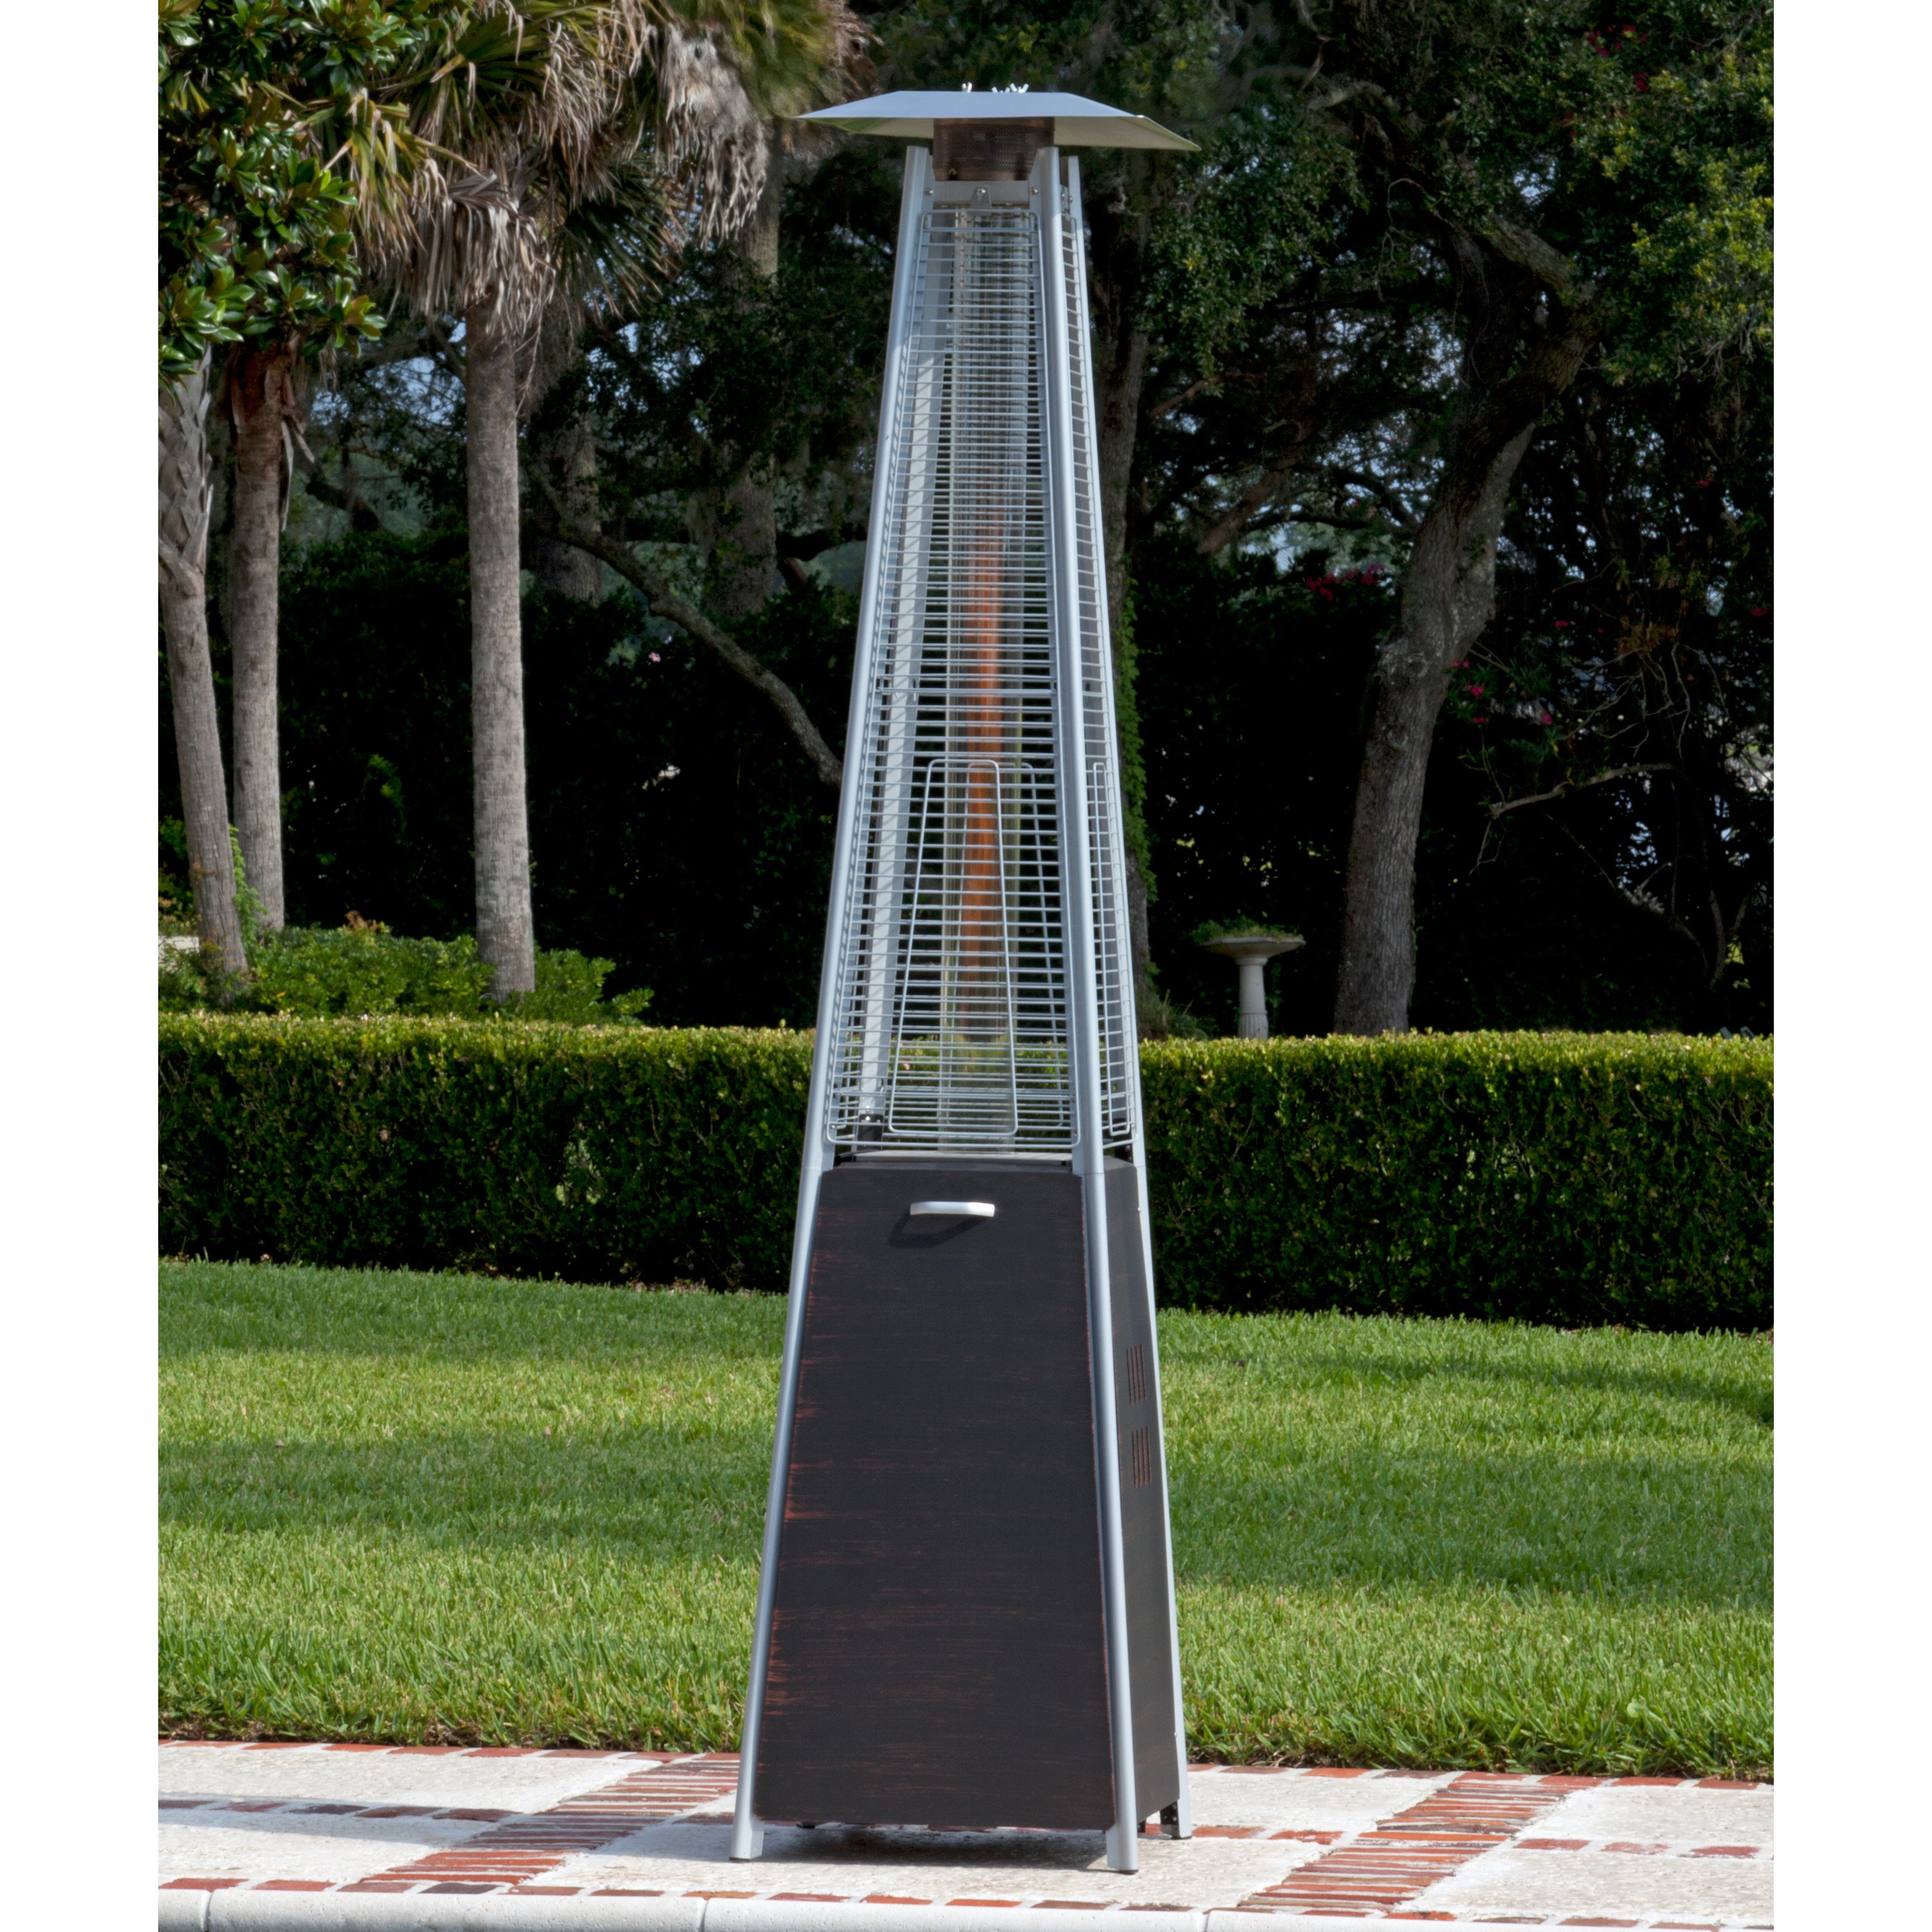 Fire Sense Coronado Brushed Bronze Pyramid Flame Patio Heater by Well Traveled Living